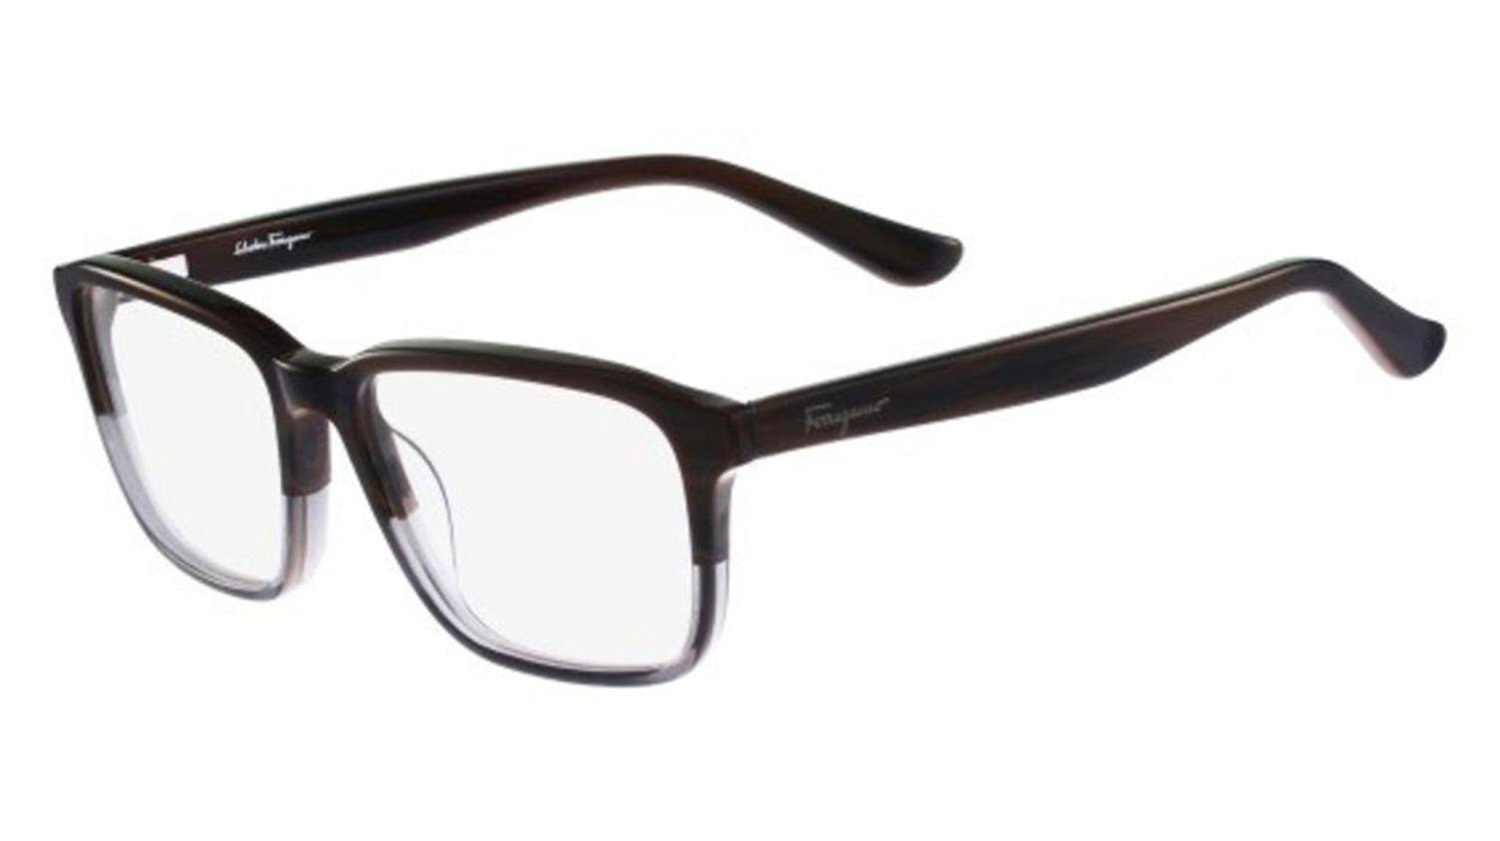 Eyeglasses FERRAGAMO SF2738 205 DARK BROWN HORN GREY